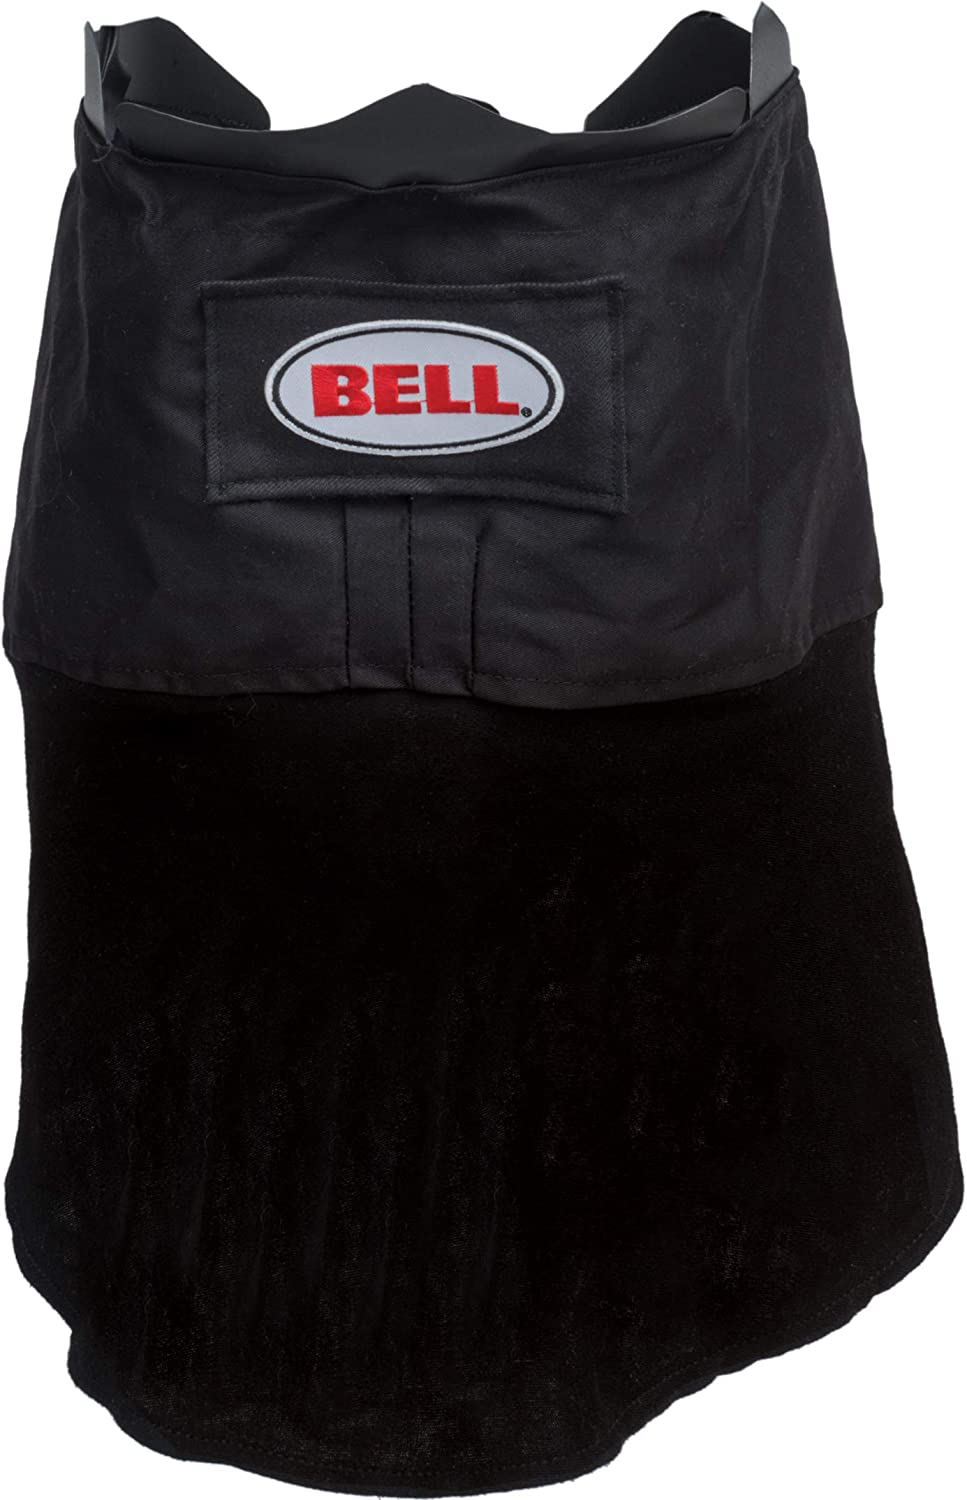 Bell Qualifier Forced Air Dust Skirt Black, X-Small//Small